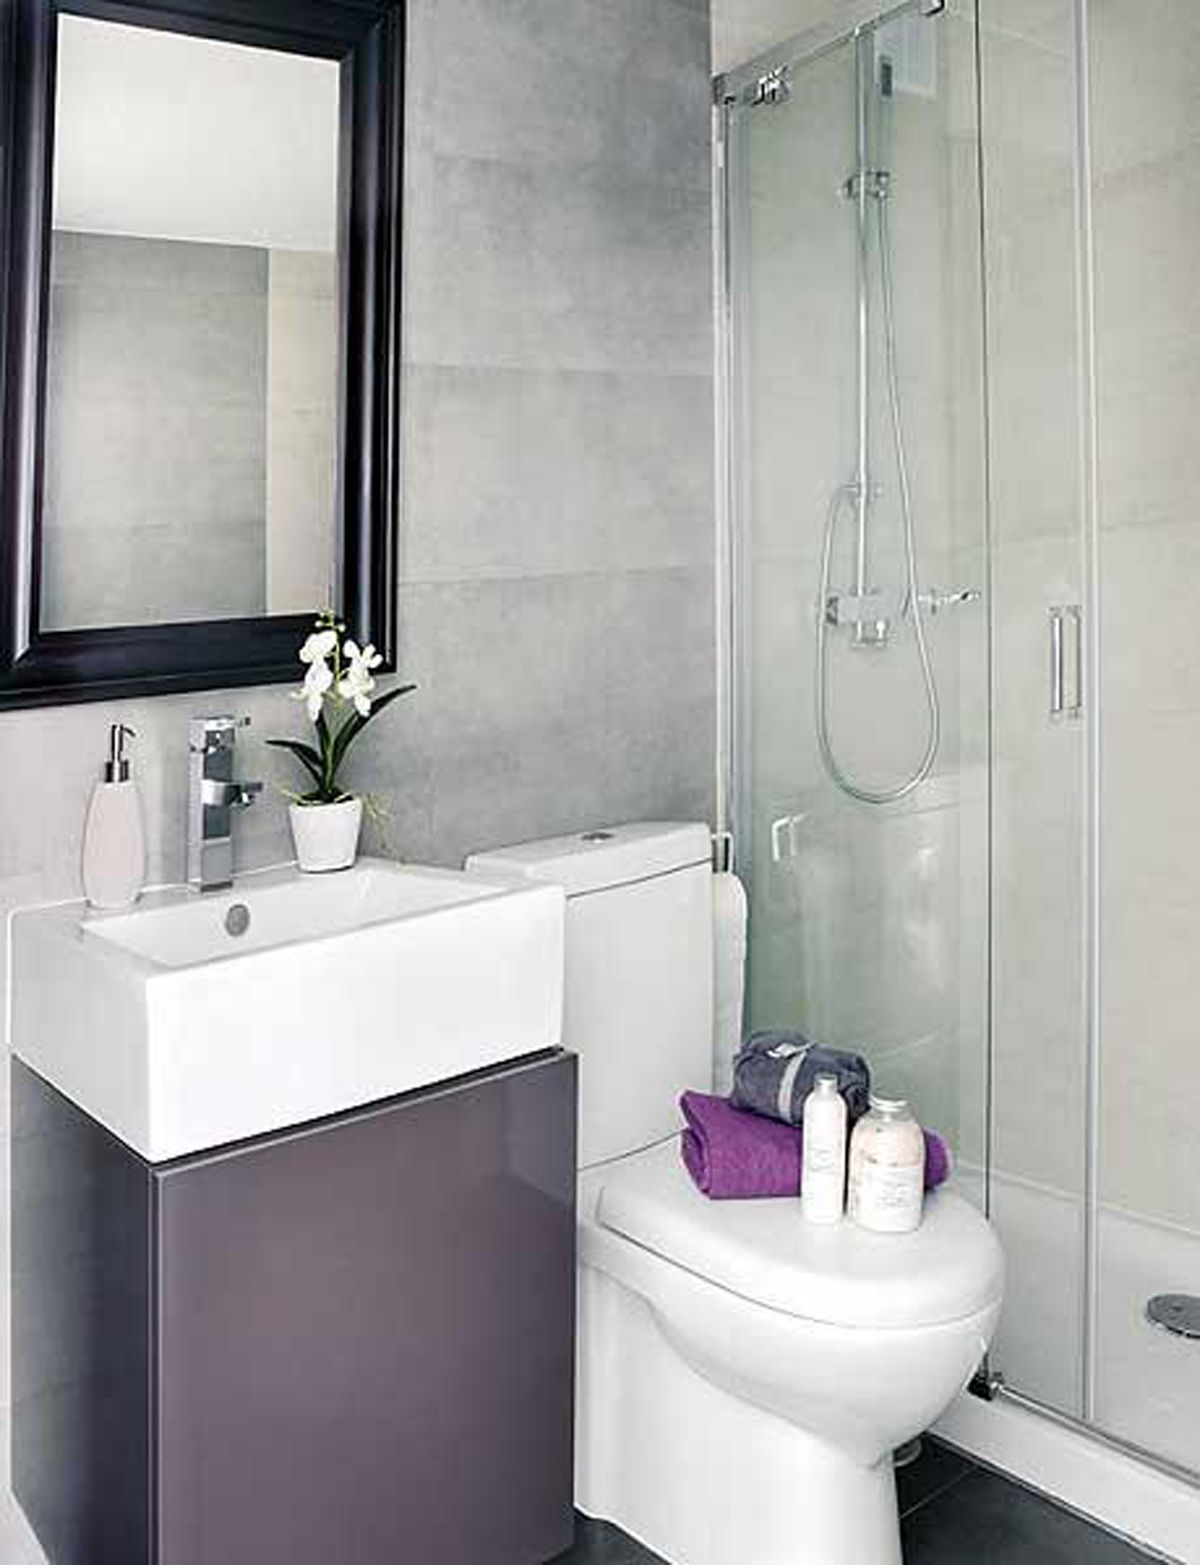 Intrinsic Interior Design Applied In Small Apartment Architecture - Bathroom vanity ideas for small bathrooms for small bathroom ideas